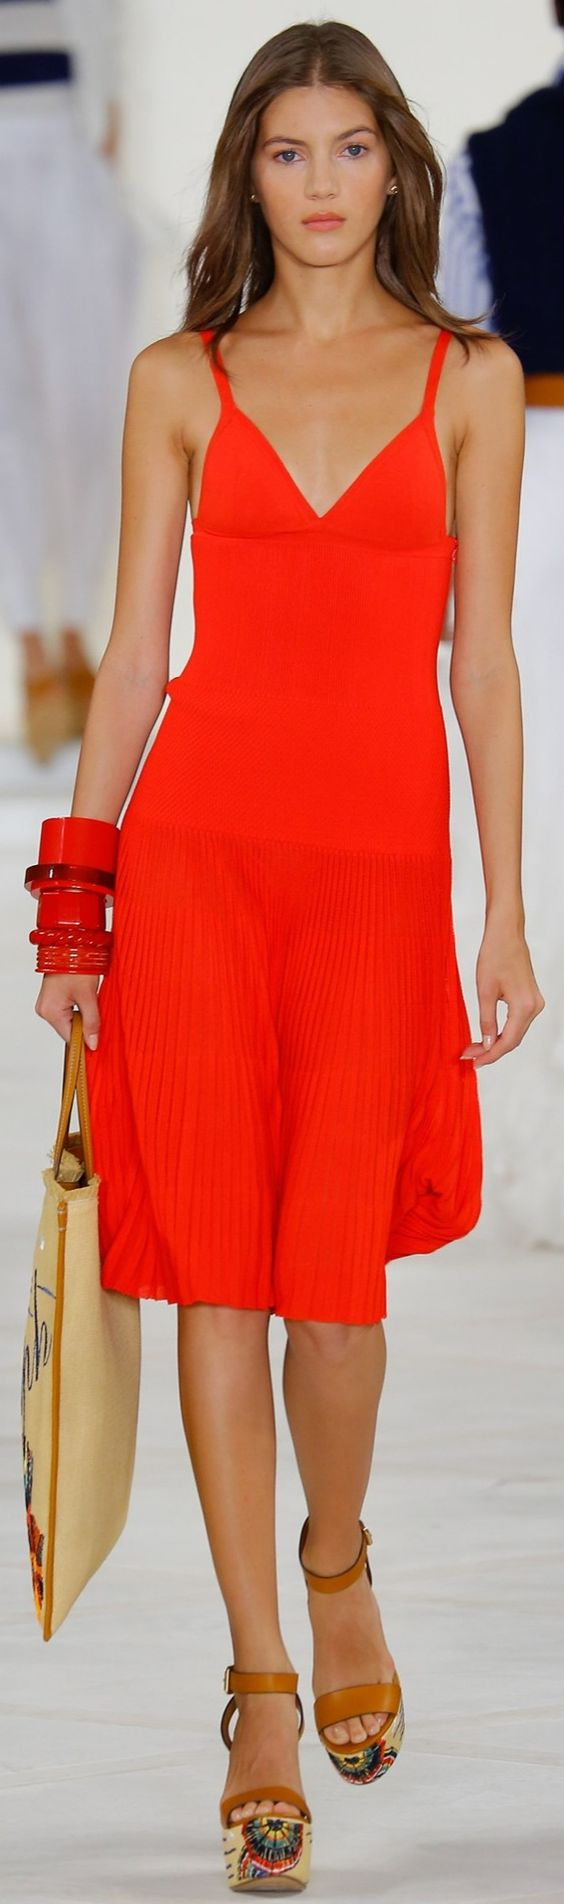 @ralphlauren Amazing red dress for woman. #dress #woman #red: